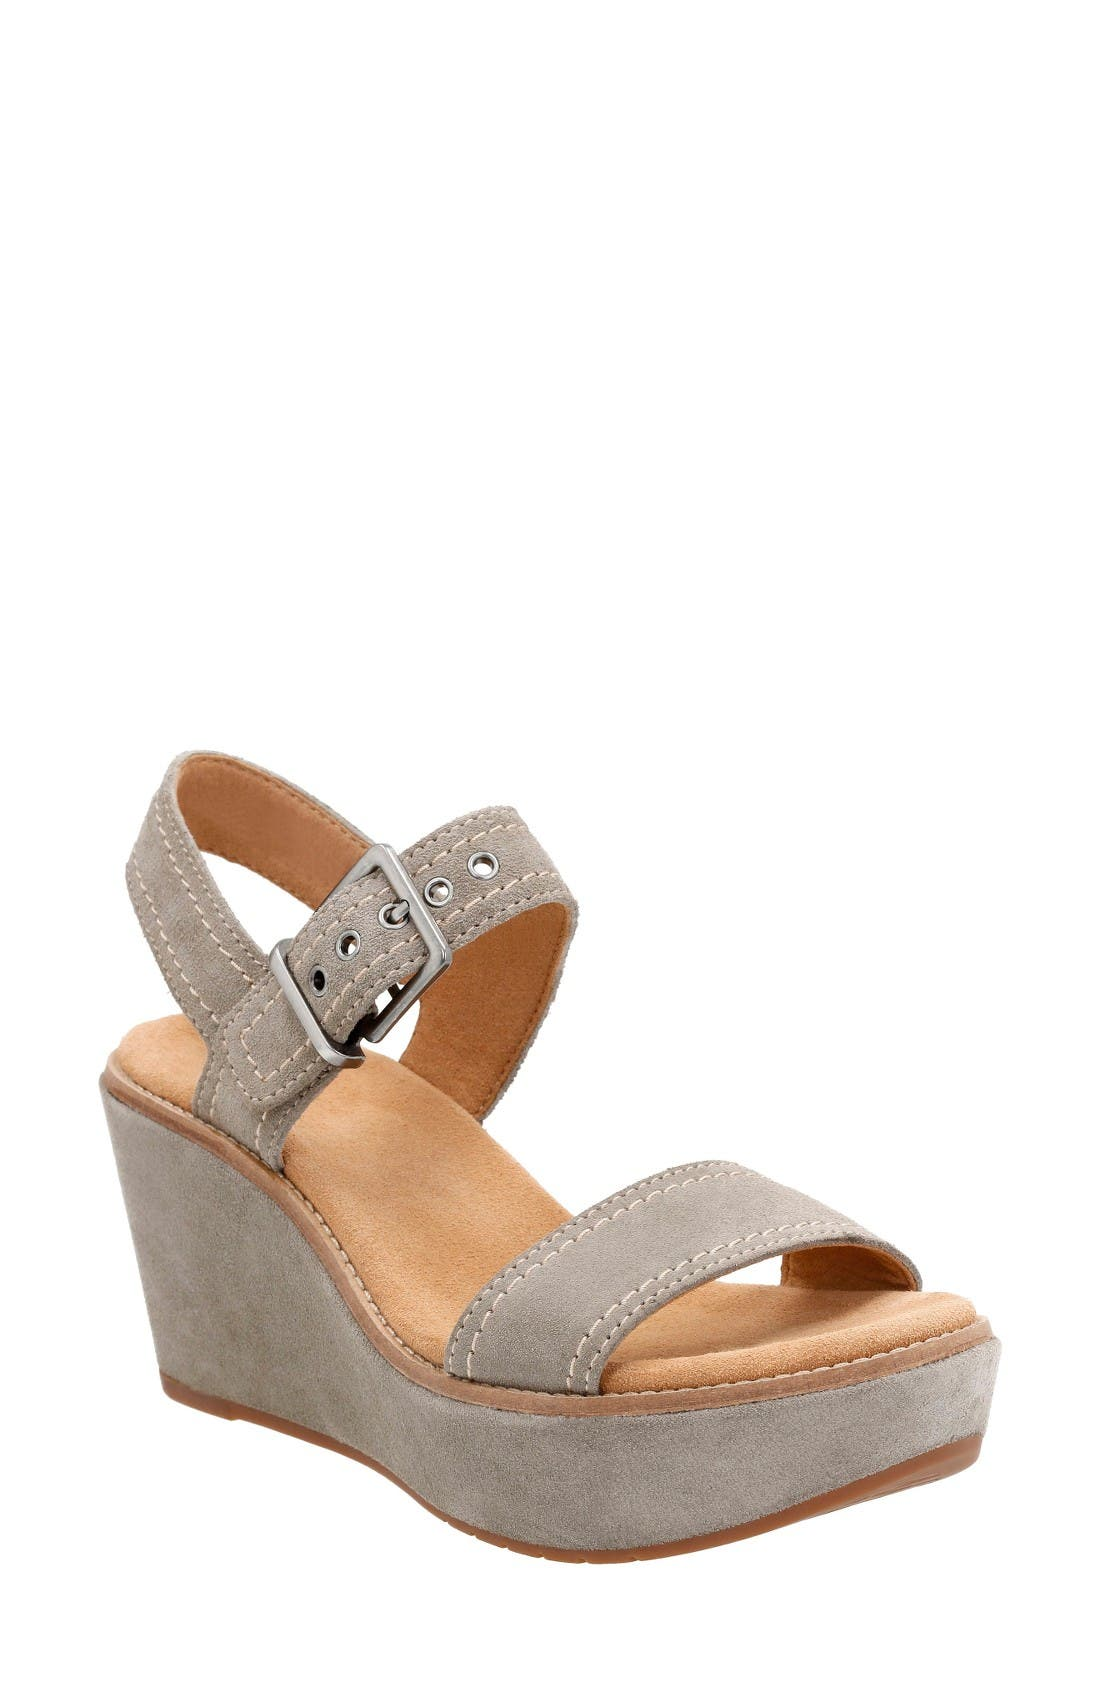 Alternate Image 1 Selected - Clarks® Aisley Orchid Wedge Sandal (Women)